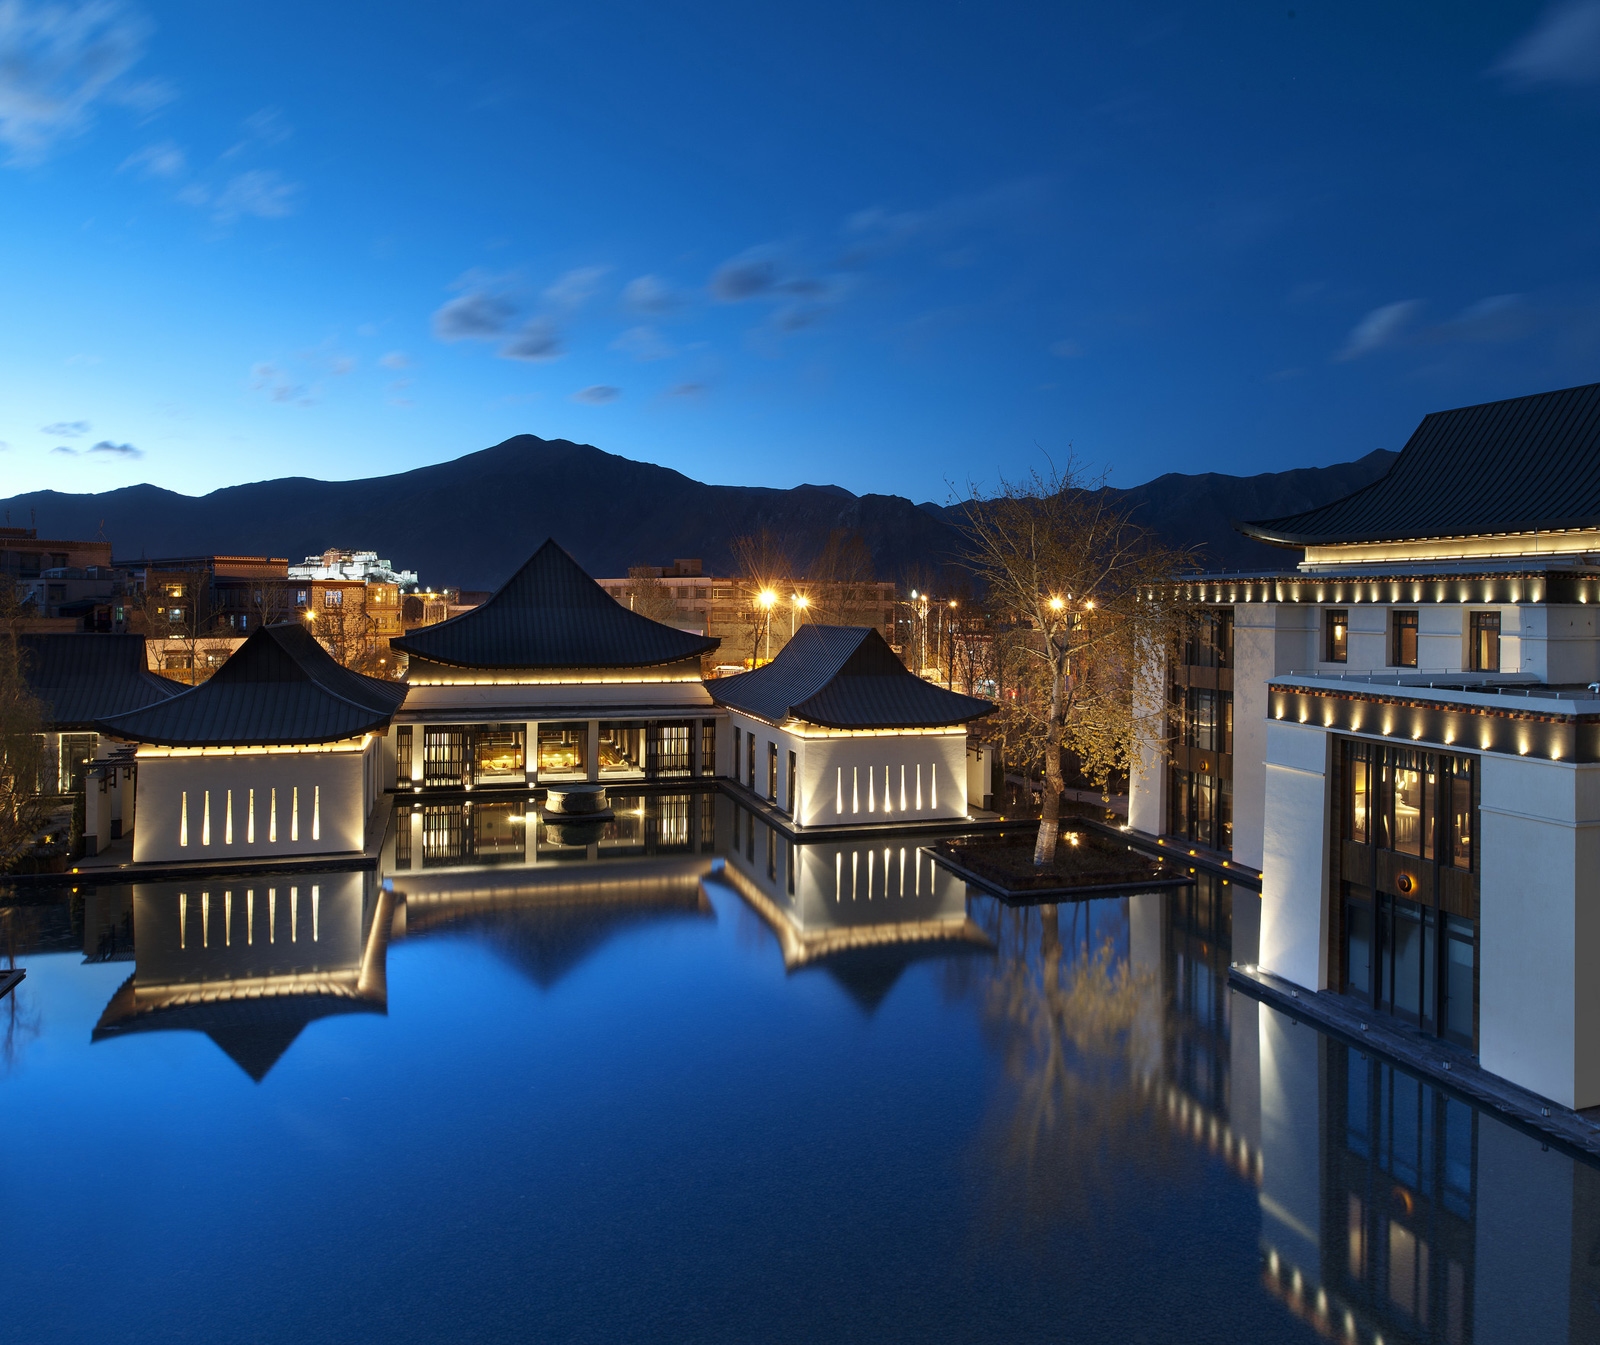 St regis lhasa tibet 39 s first five star hotel extravaganzi for Motel luxury